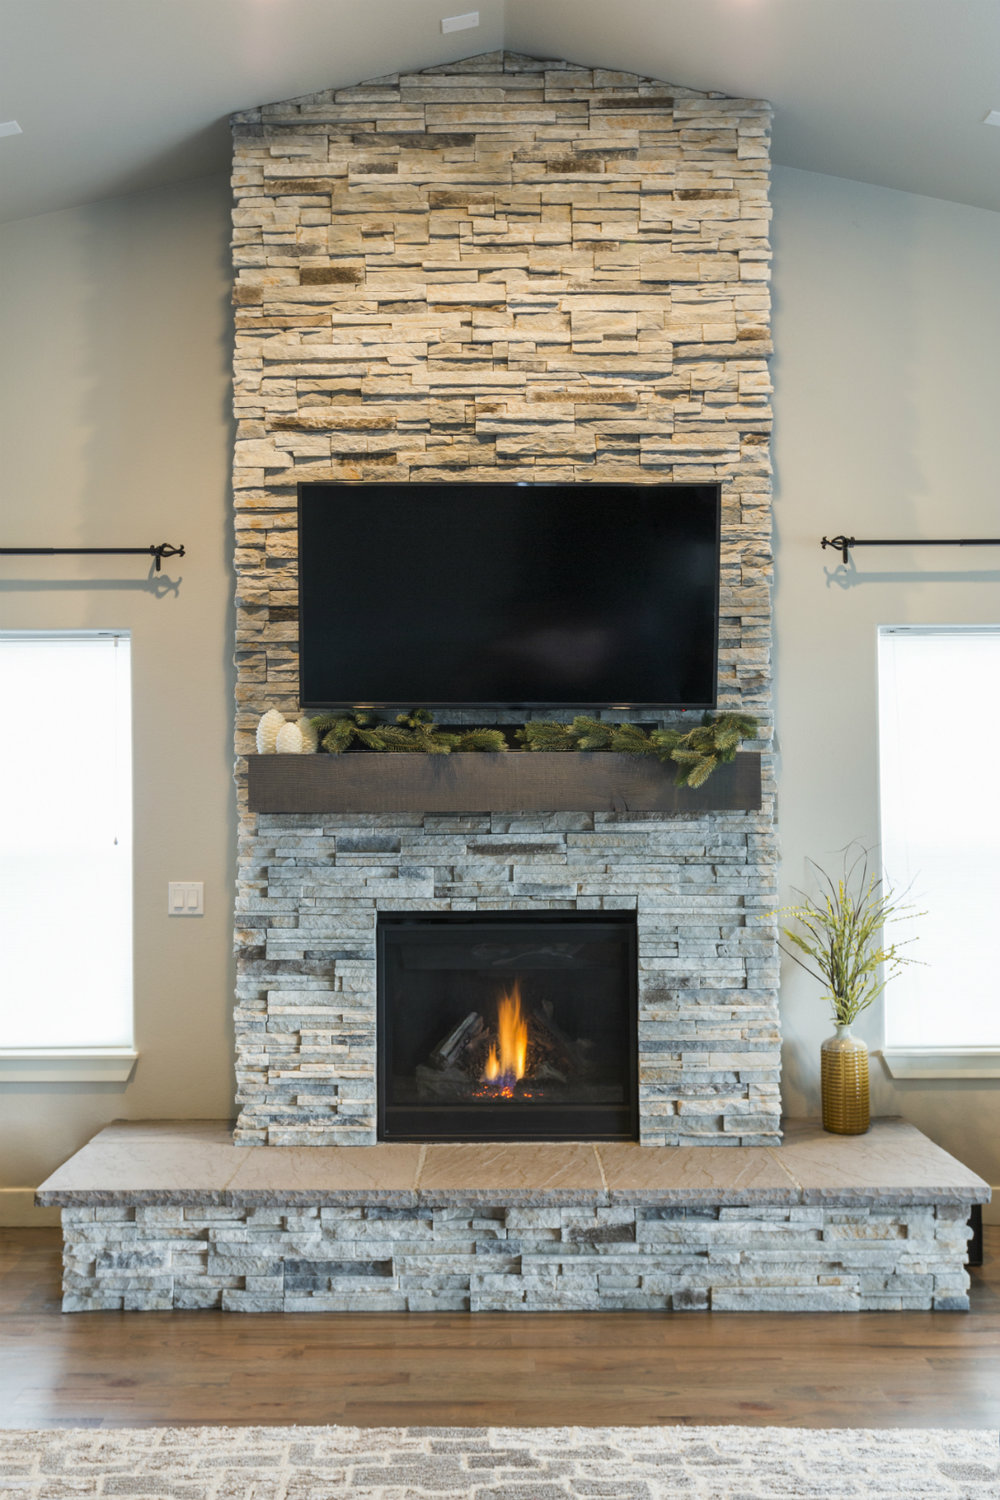 Using Stone Veneer for Interior Masonry in Briarcliff Manor, NY